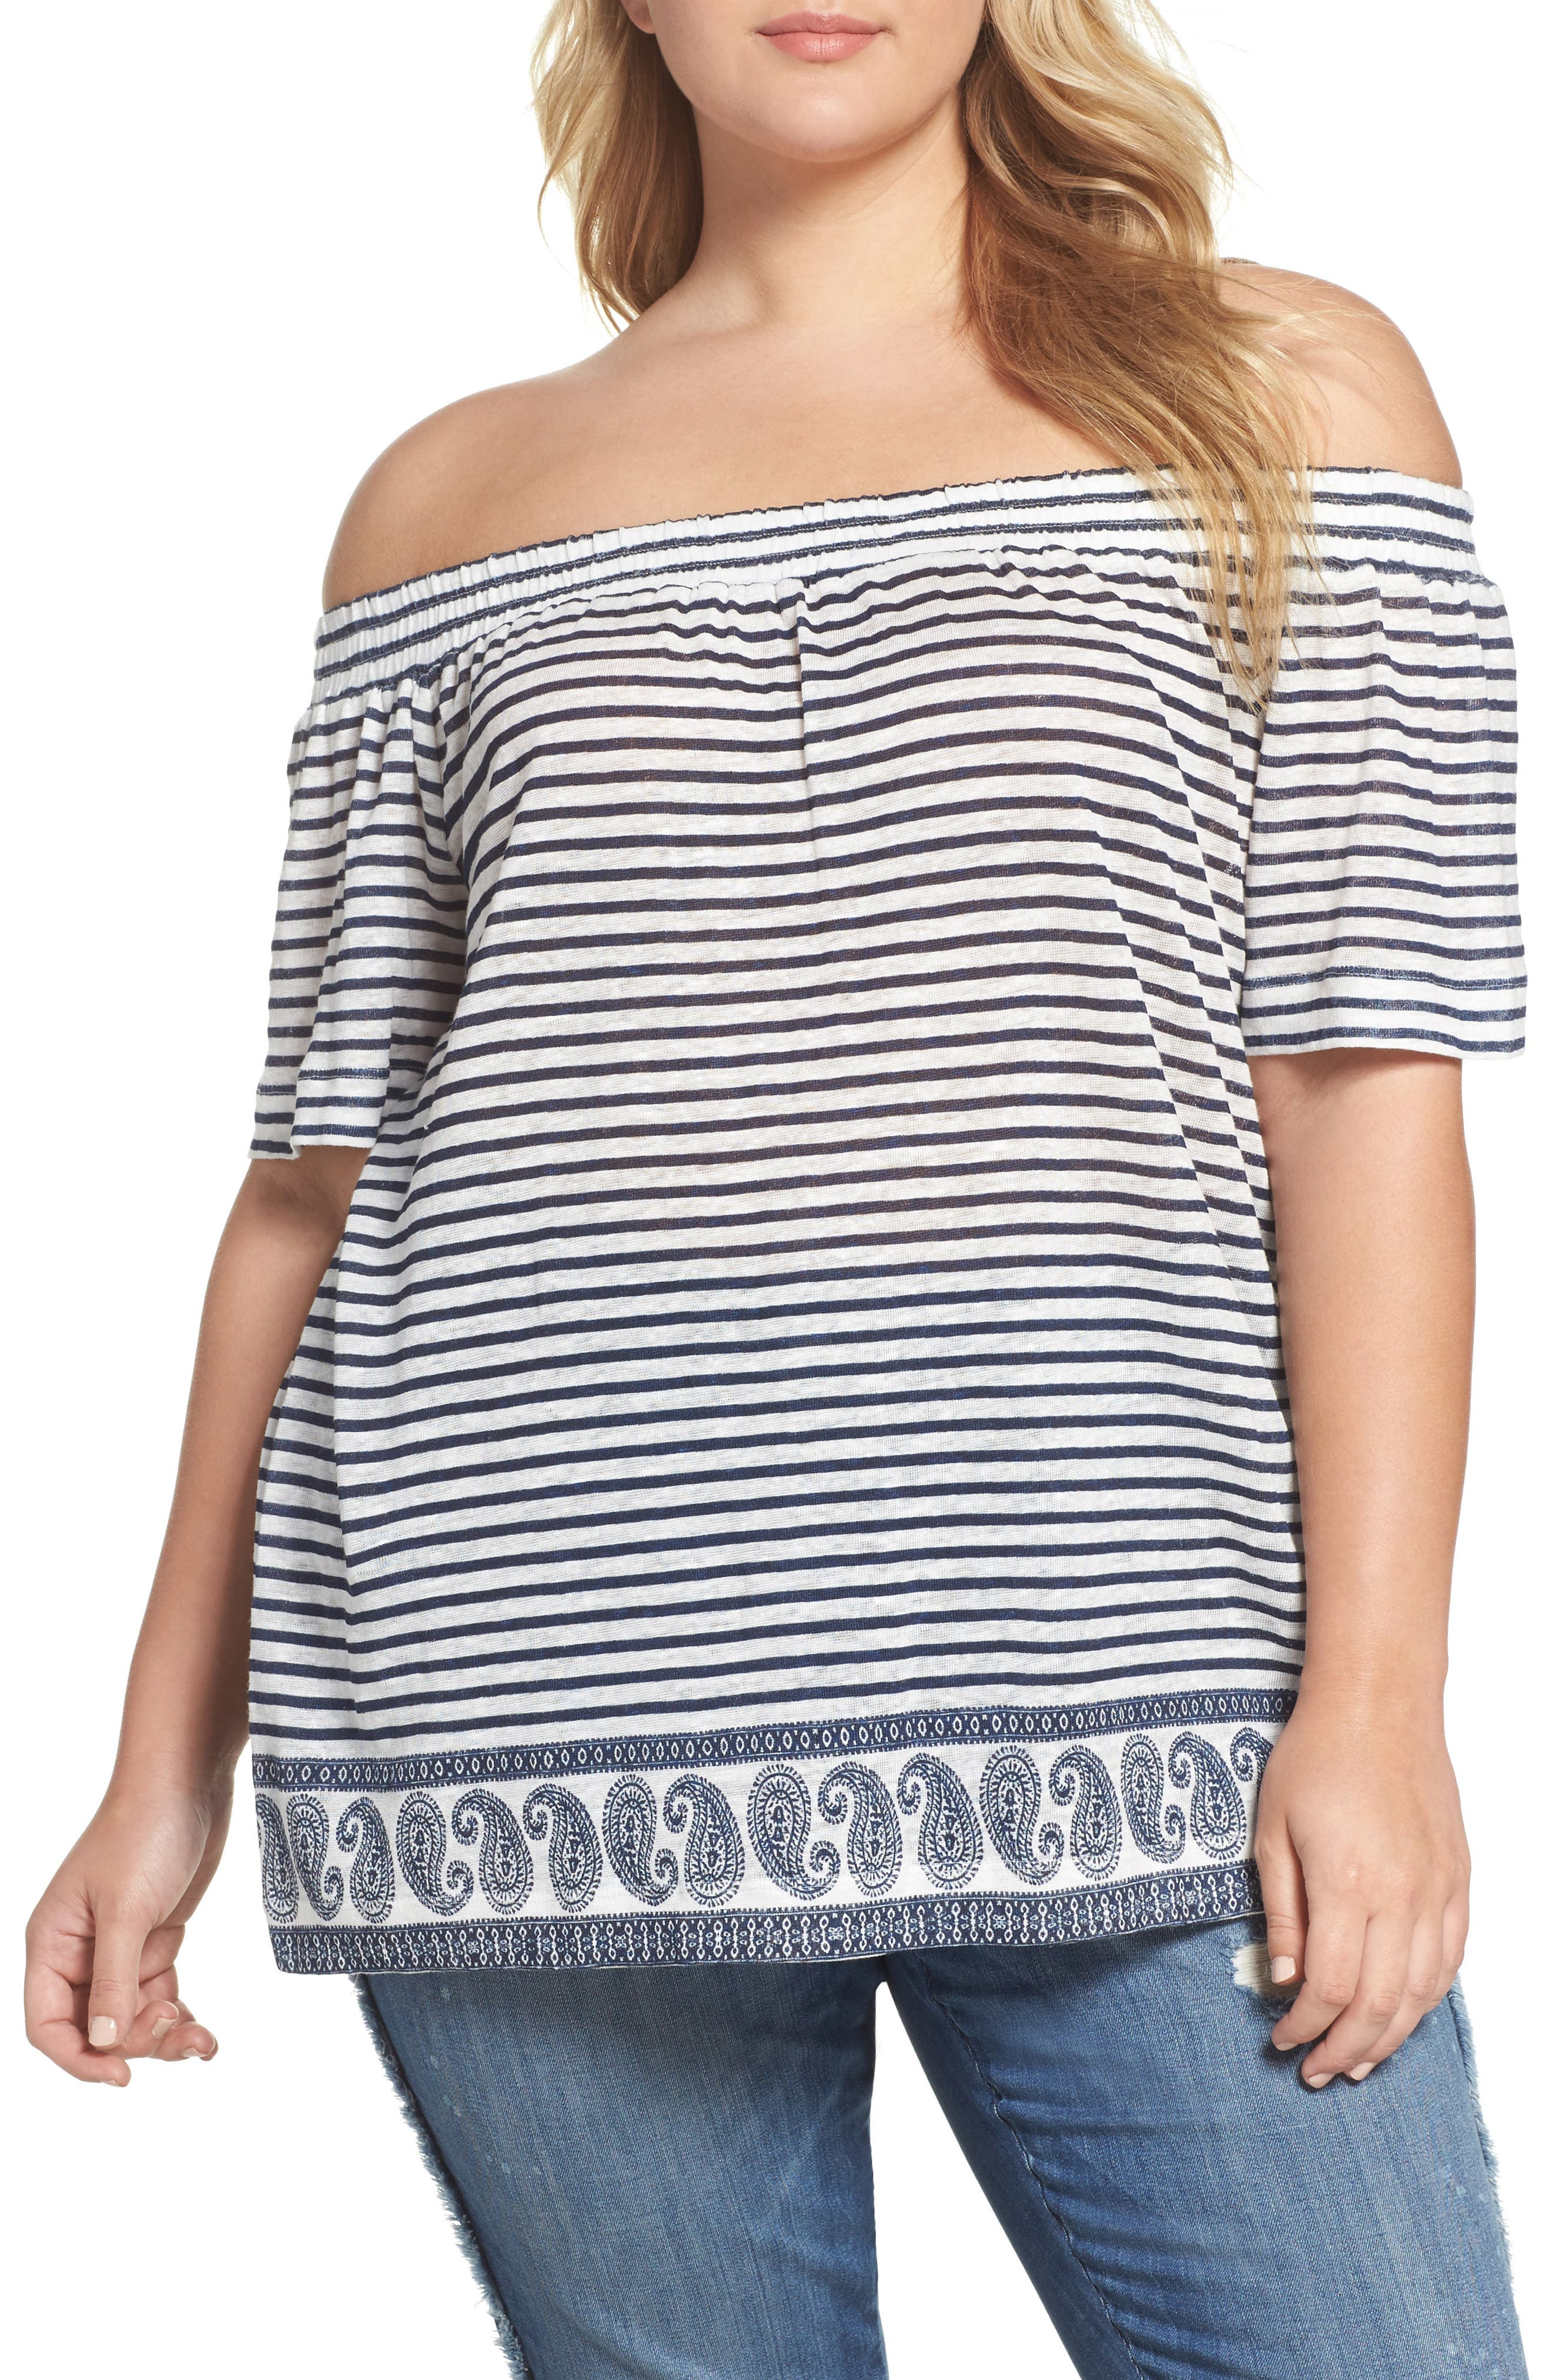 Alternate Image 1 Selected - Two by Vince Camuto Off the Shoulder Paisley Stripe Top (Plus Size)